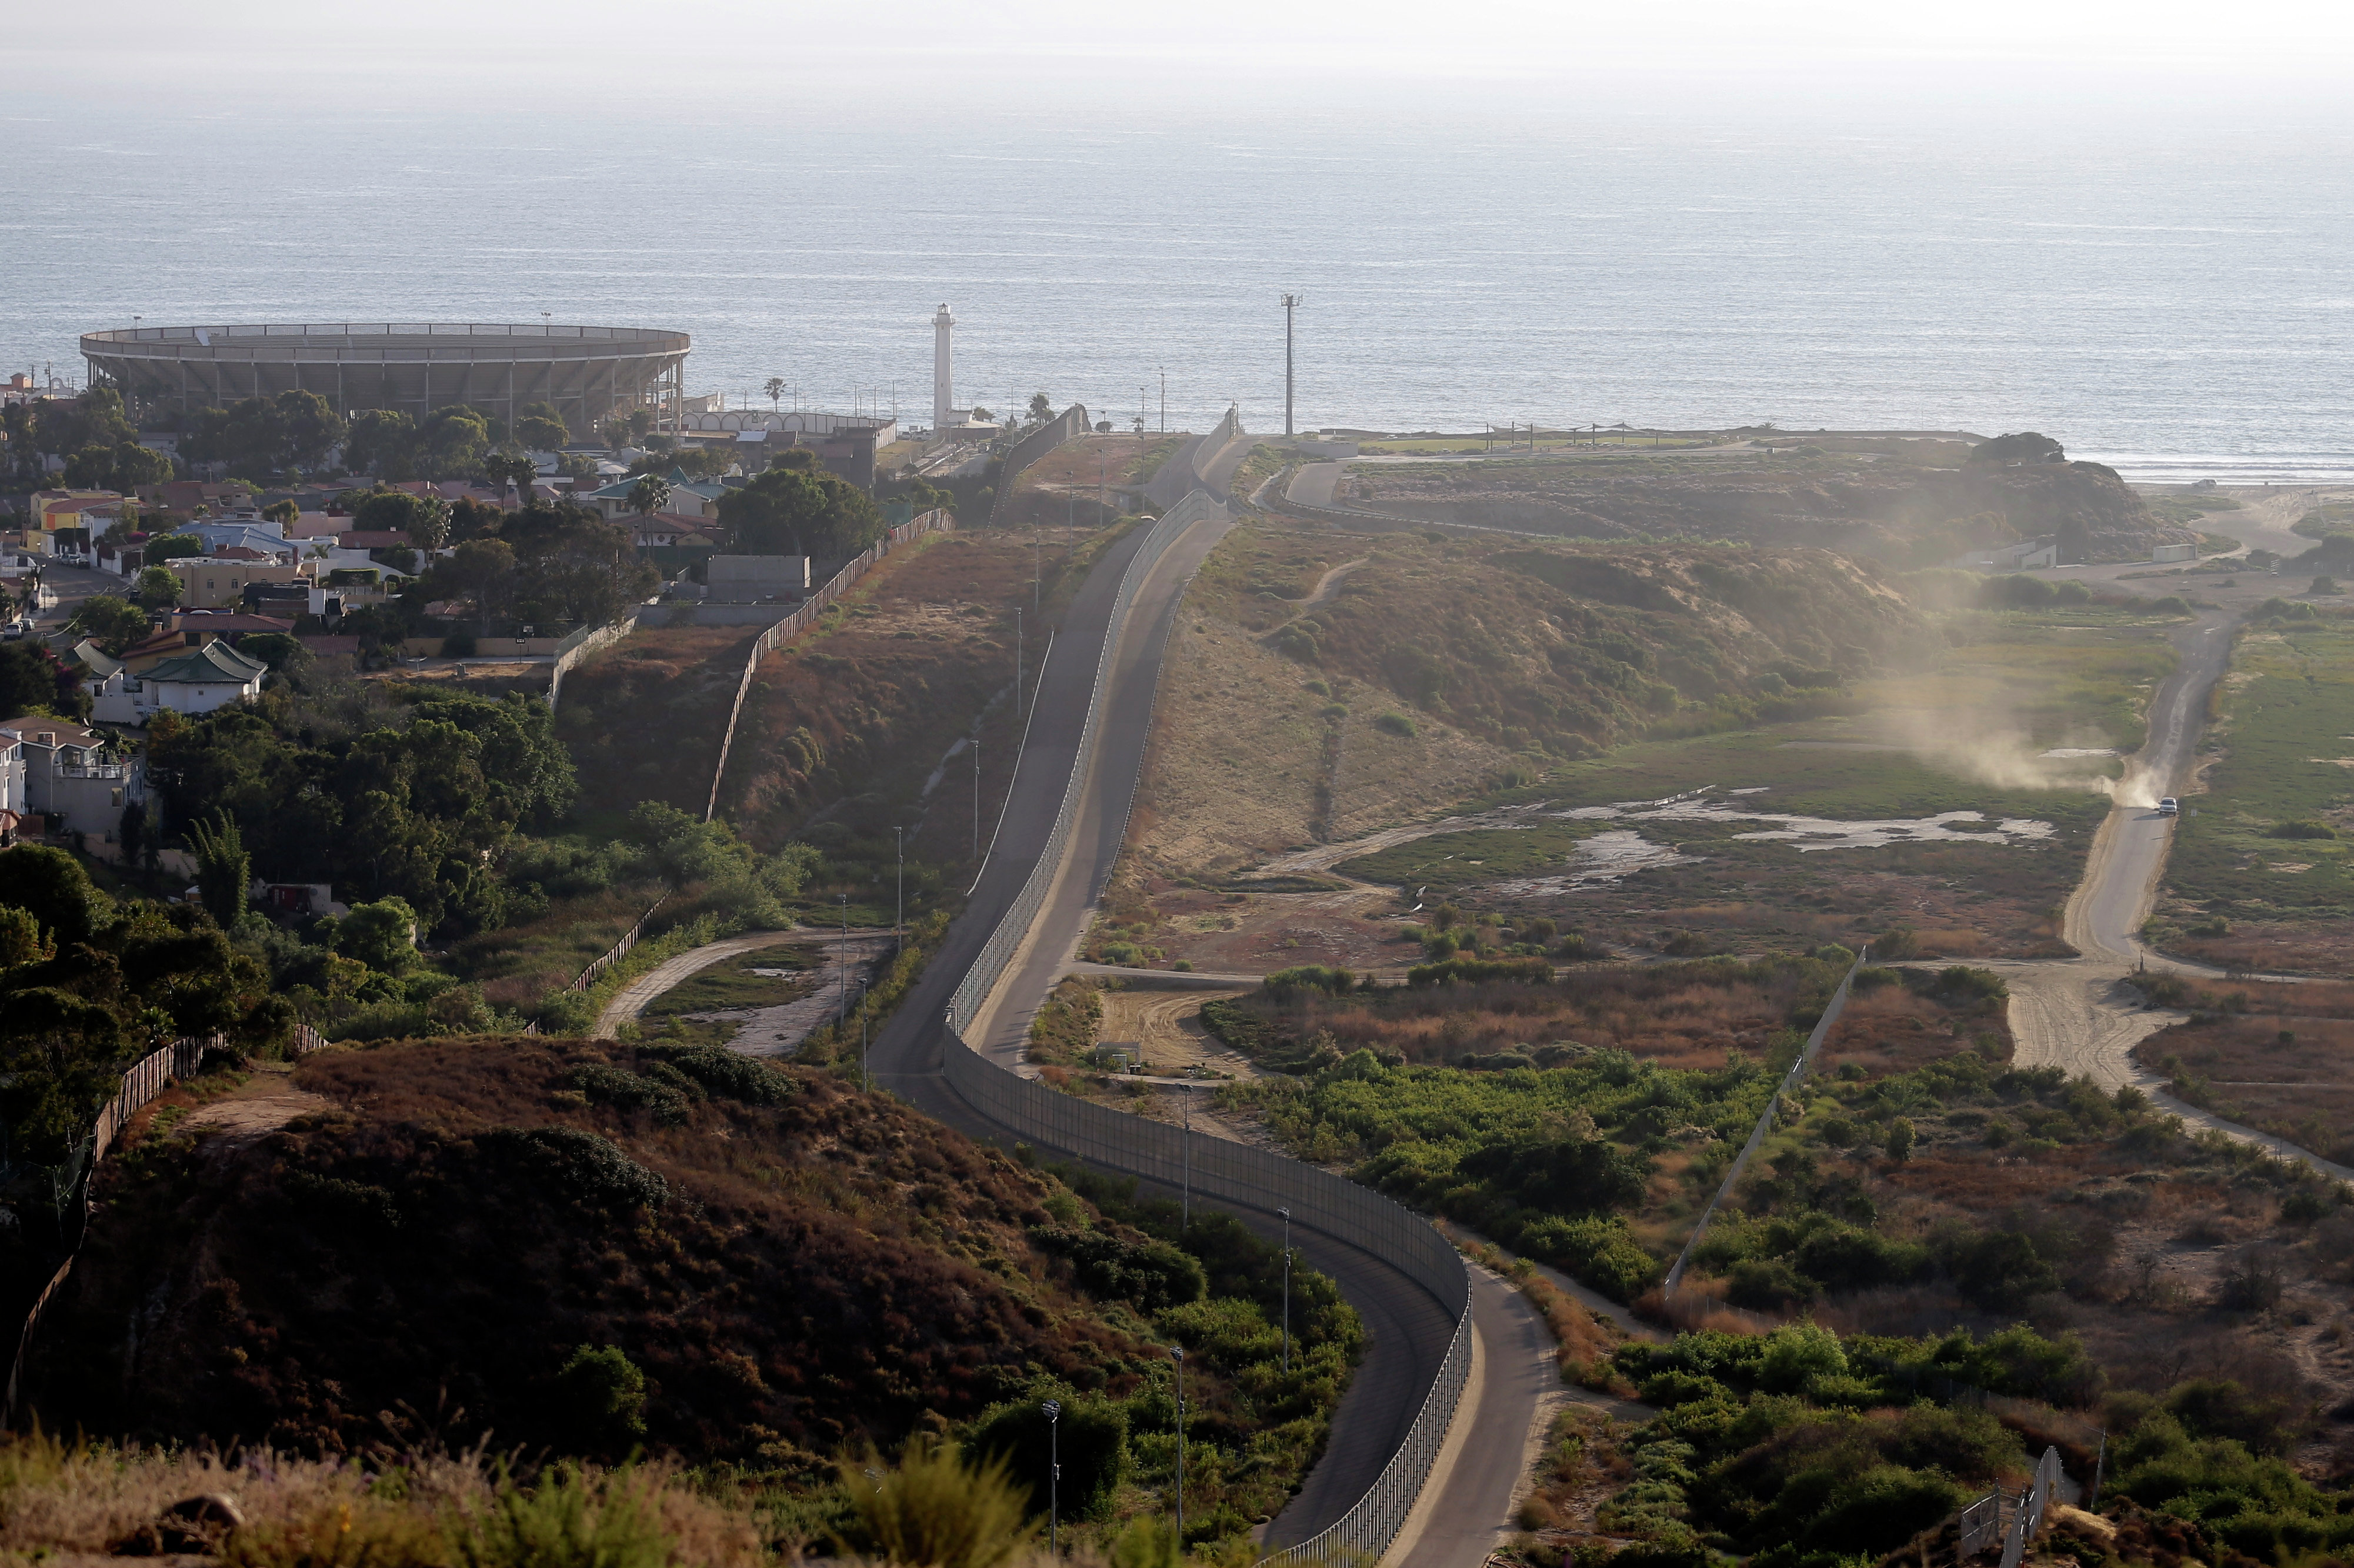 A U.S. Border Patrol vehicle, right, drives along a road running alongside the border structures that separate Tijuana, Mexico, left, from San Diego Thursday, June 13, 2013, in San Diego